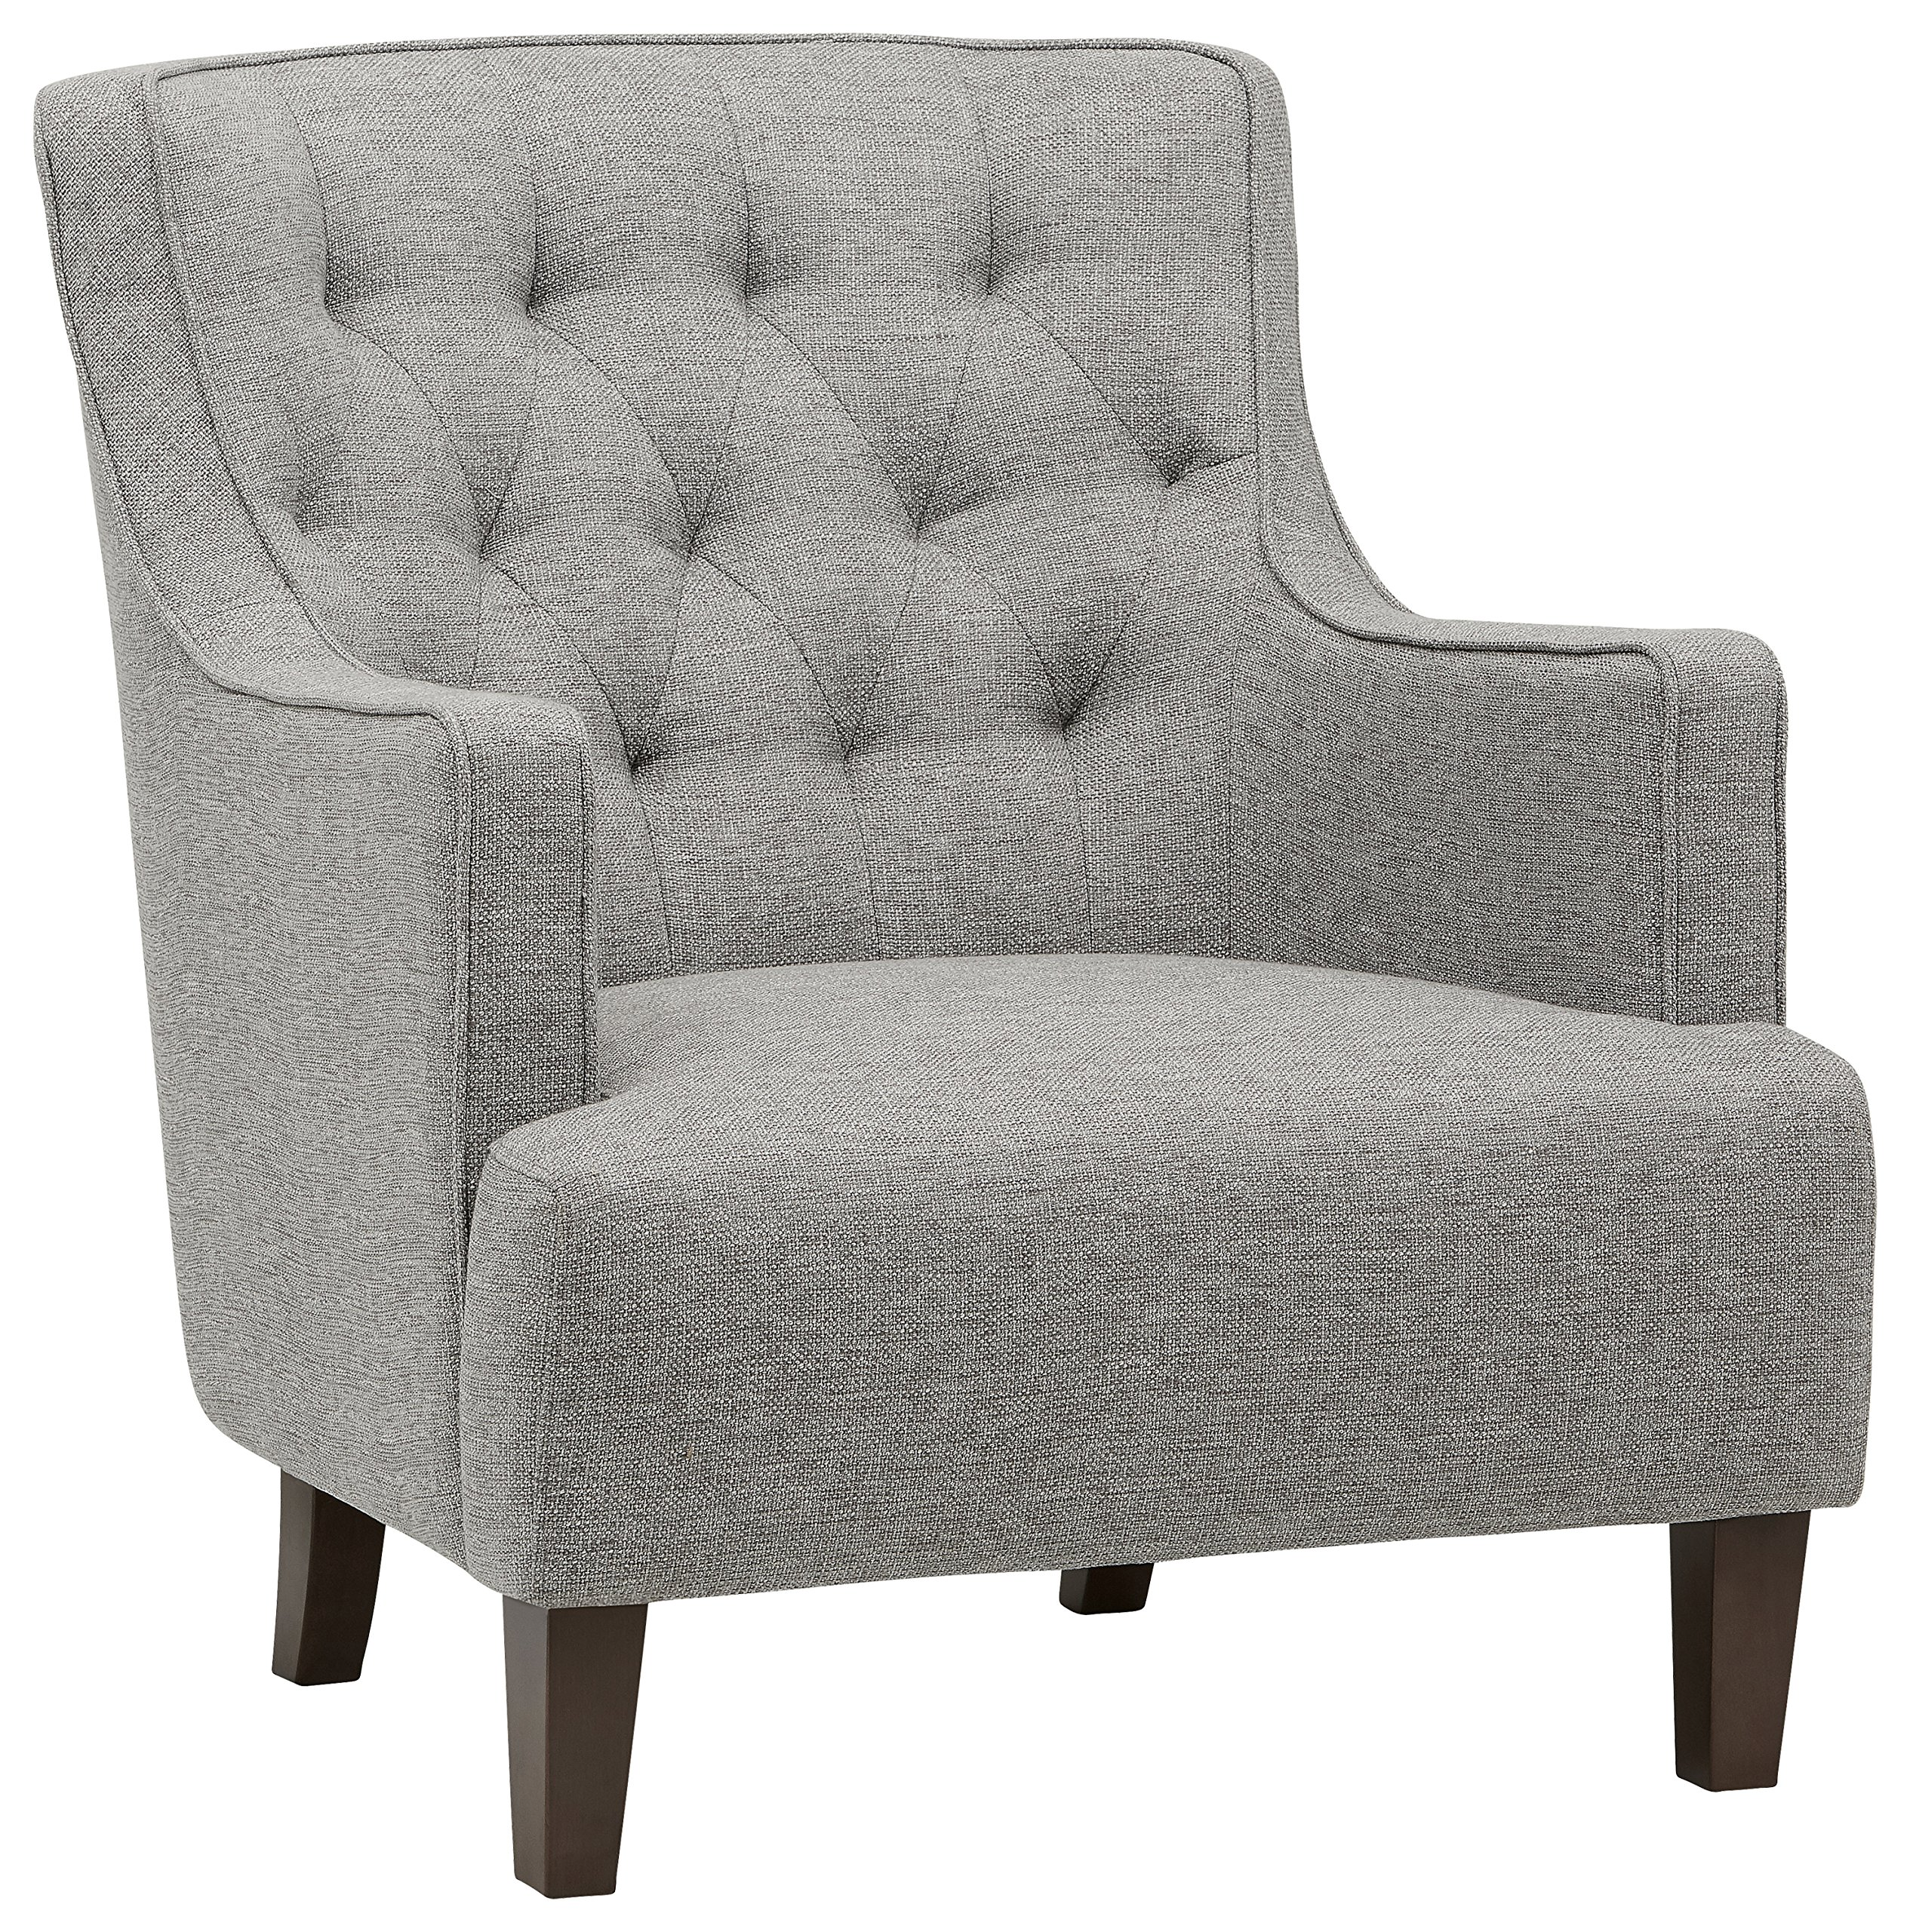 "Amazon Brand – Stone & Beam Decatur Modern Tufted Wingback Living Room Accent Chair, 32.3""W, Silver - This modern accent chair is ready to withstand your busy family life. Tufted fabric and curved sides bring style and durability that will hold up against the kids, pets and lots of entertaining in your living room. 32.3""W x 35.8""D x 36.2""H Solid beach wood covered in polyester fabric - living-room-furniture, living-room, accent-chairs - B1MD60owSSS -"